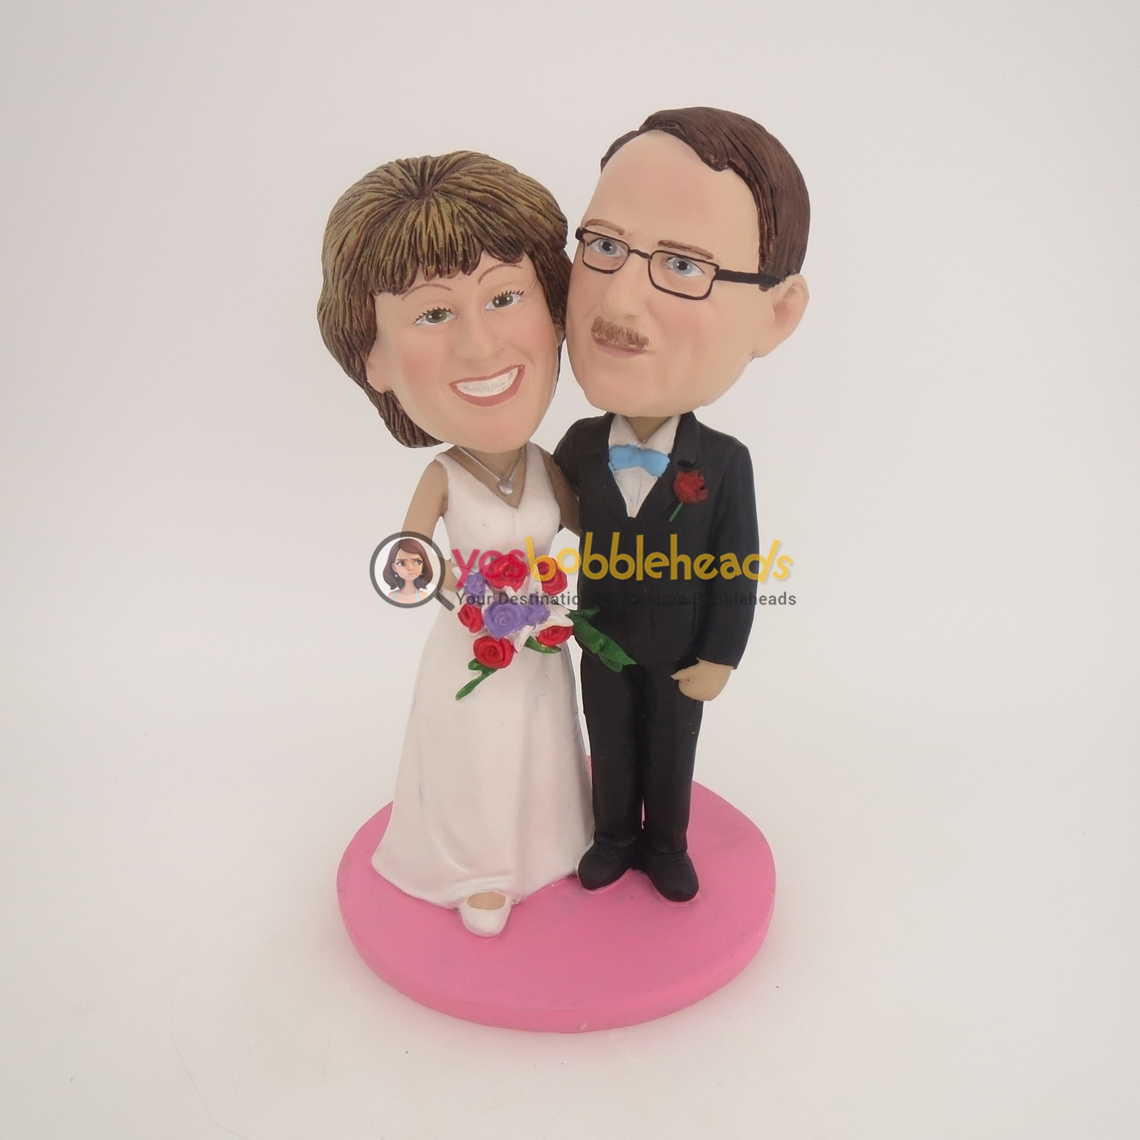 Picture of Custom Bobblehead Doll: Black Suit & White Dressed Arms Crossed Wedding Couple